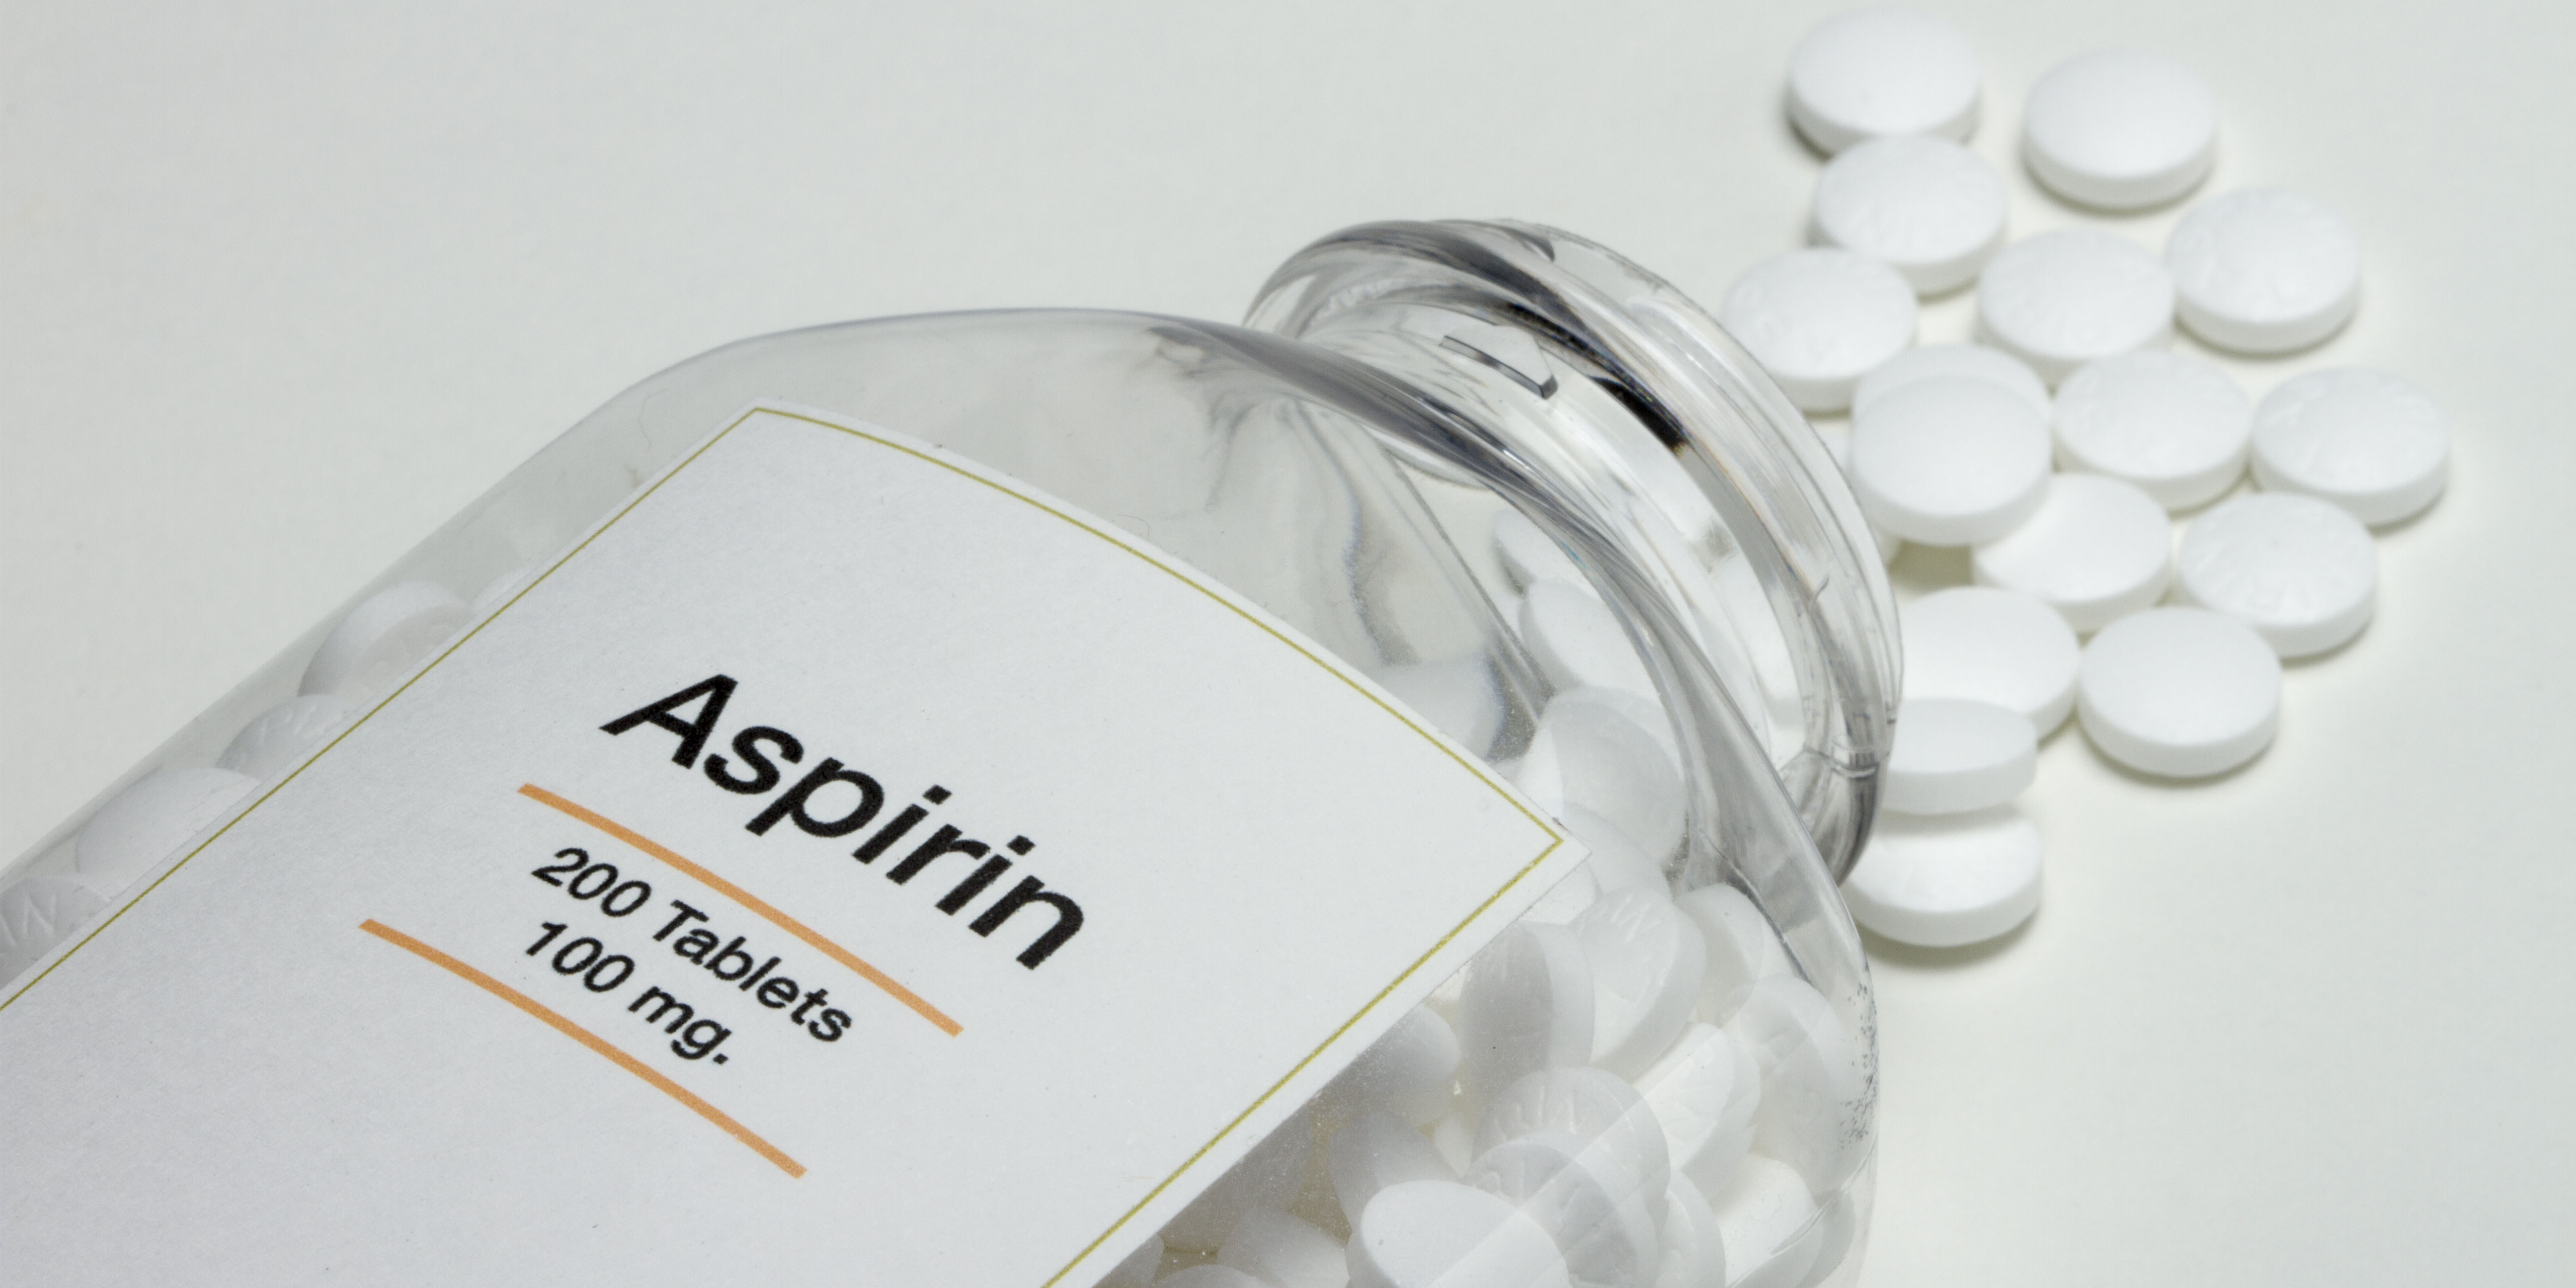 Tell the FDA to Warn the Public About Daily Aspirin Use